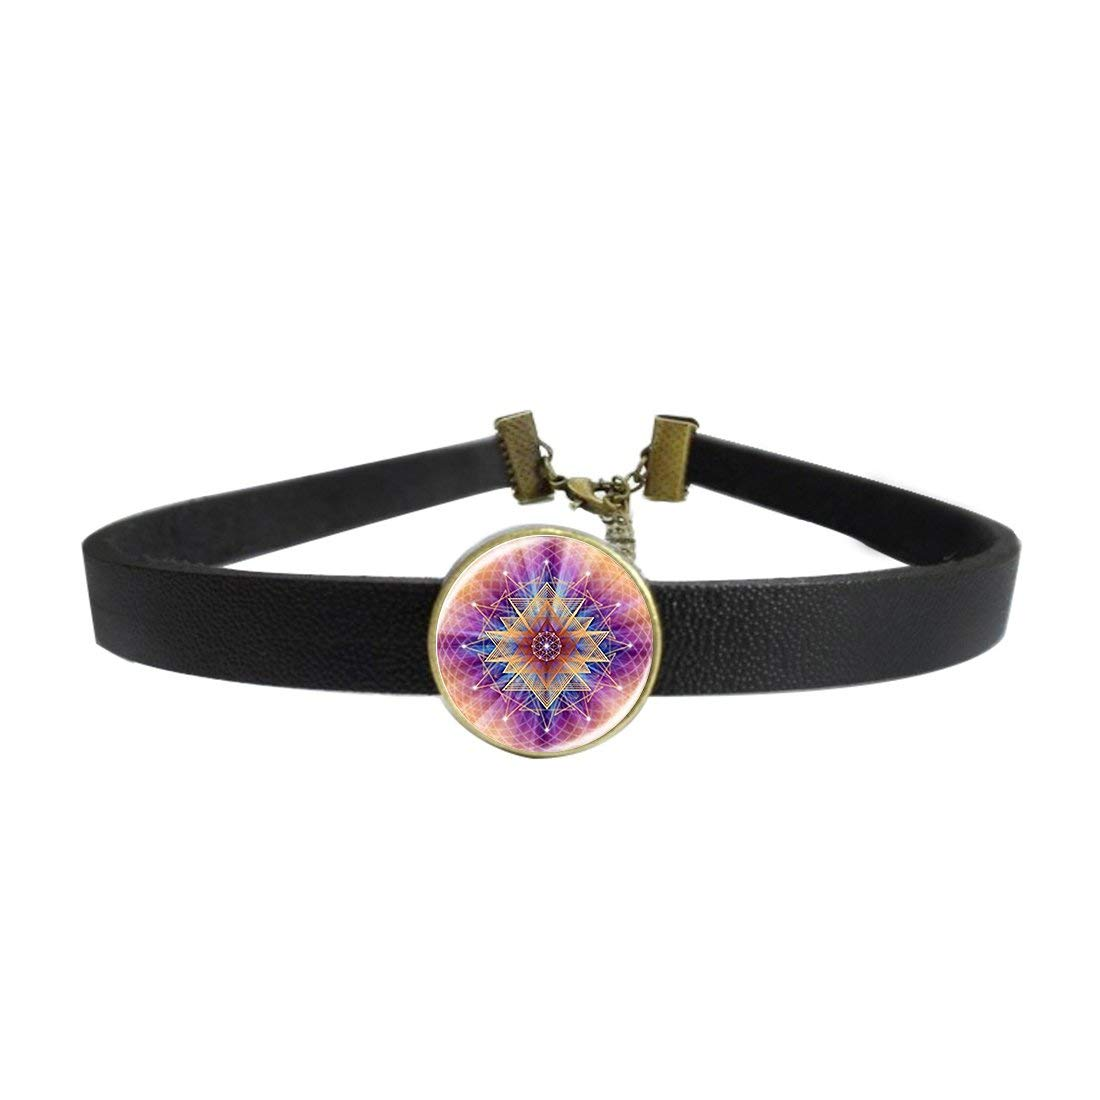 WAZZIT Vintage Choker Neck Collar Vintage Purple Flower Of Life Picture Goth Punk Leather Necklace with Glass Pendant